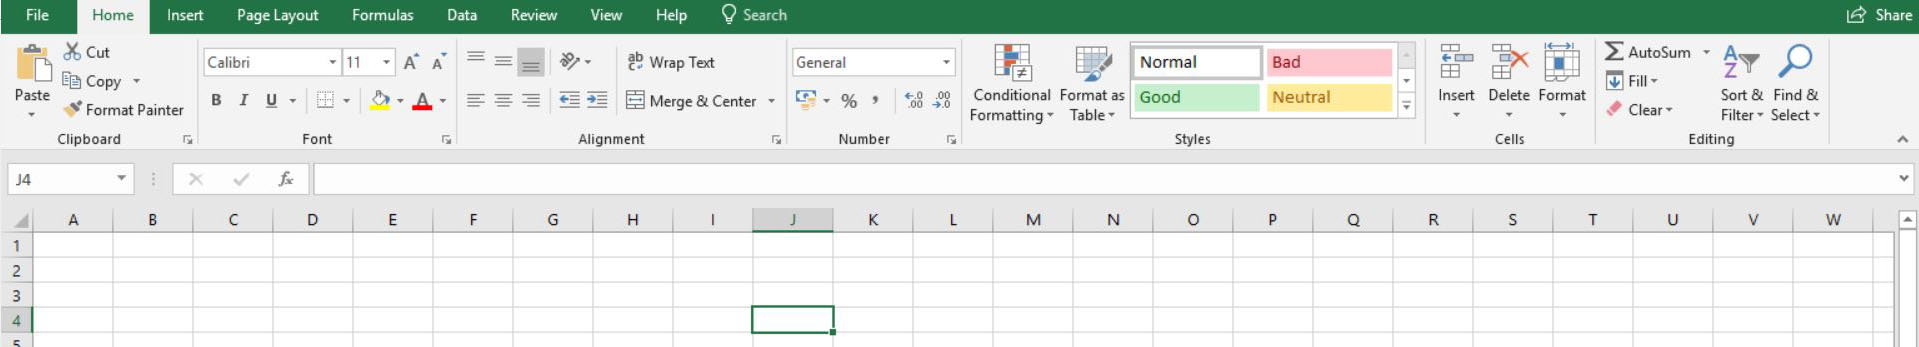 Free Excel Bookkeeping Templates - 12 Accounts Spreadsheets